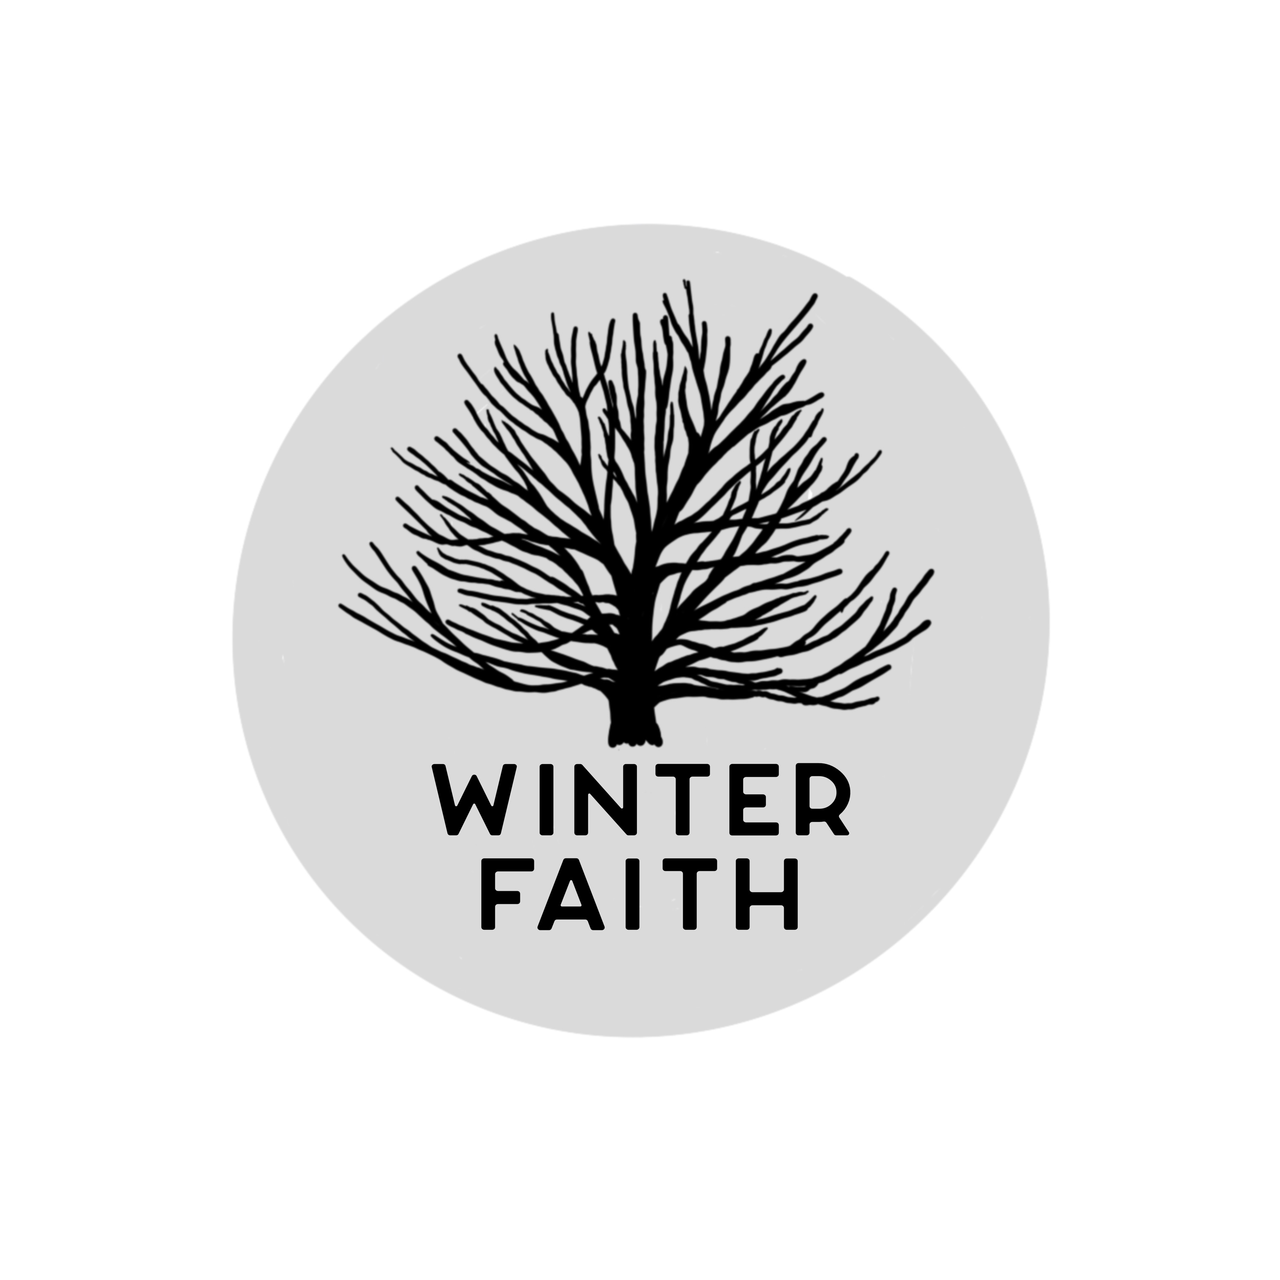 The Winter Faith Newsletter by Andrew Frazier